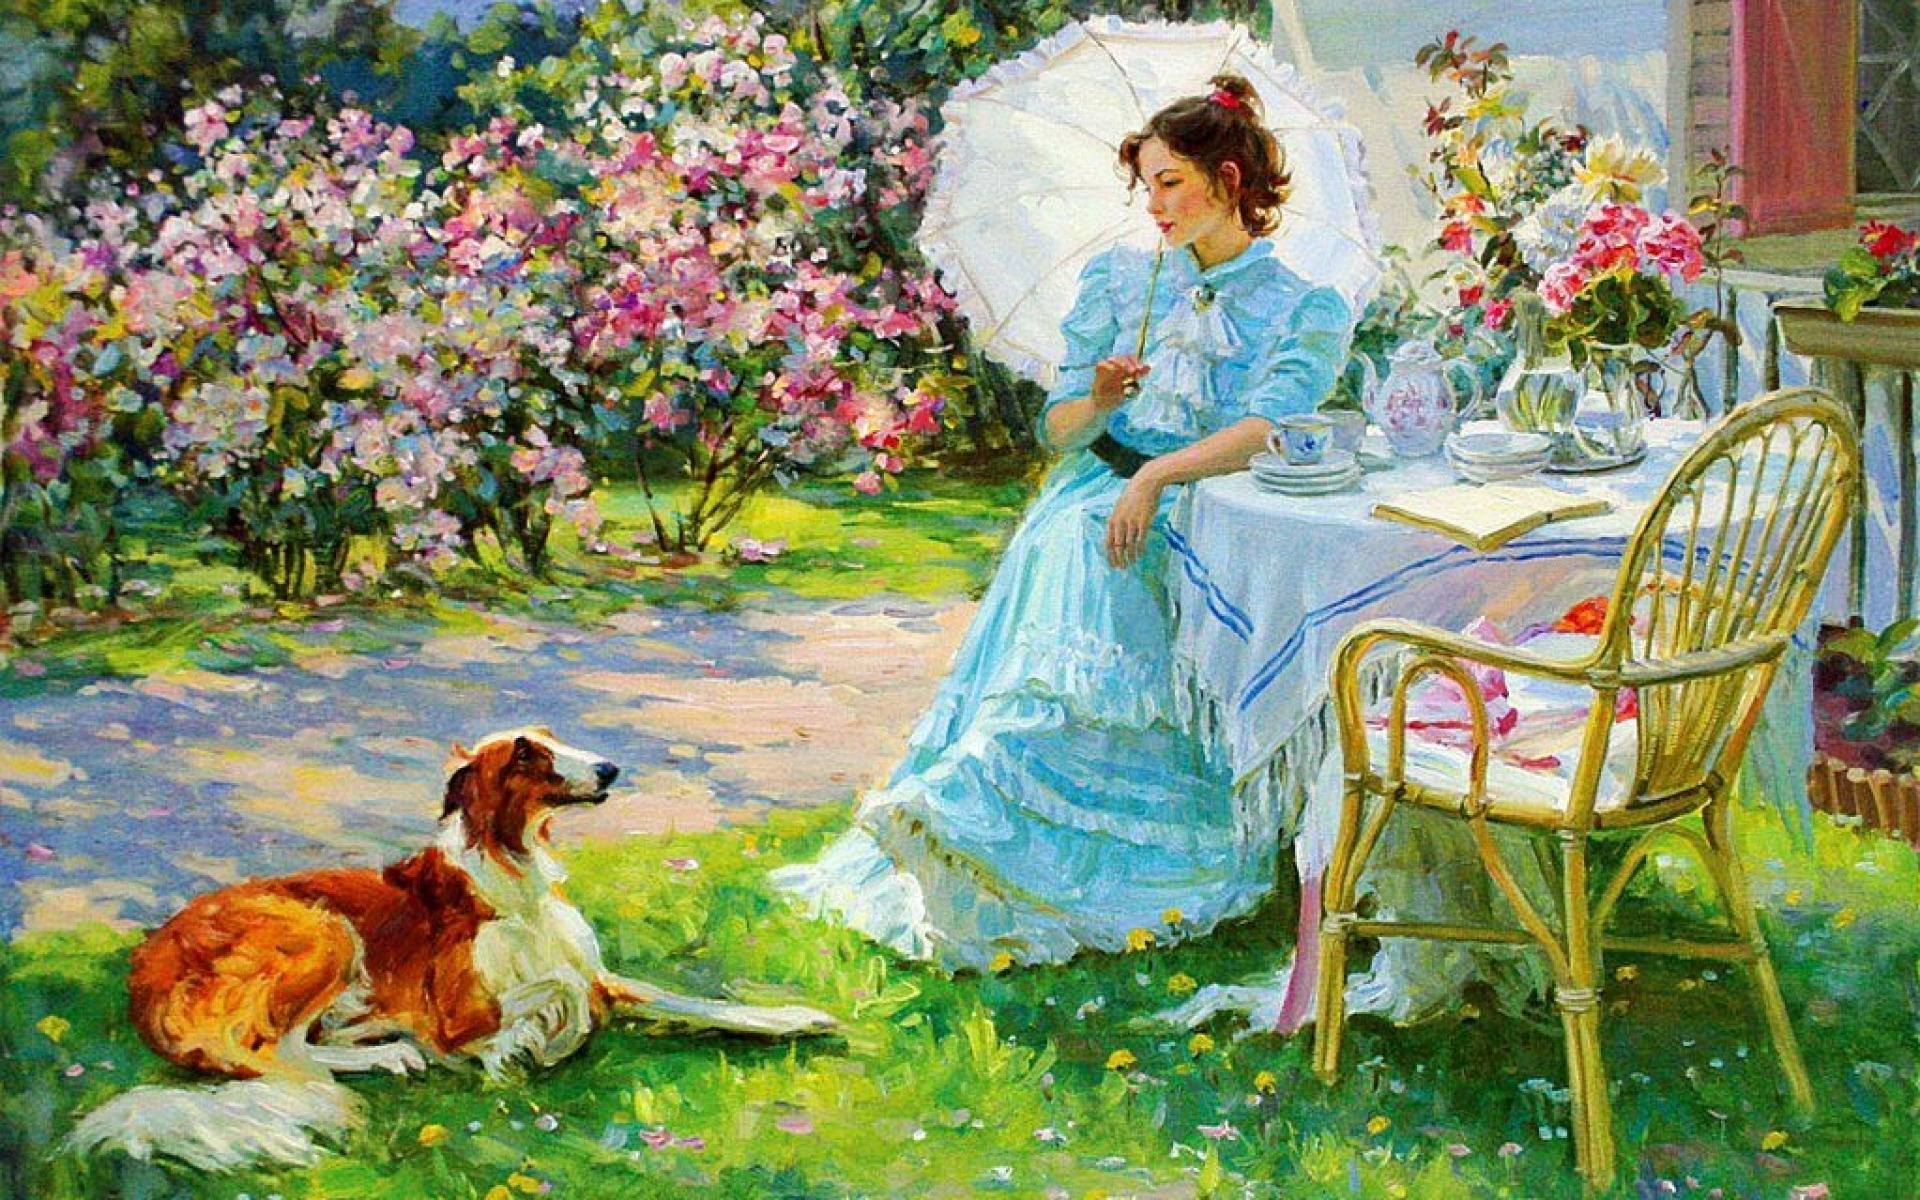 Cute Girl And Boy Animated Wallpaper Woman Dog Garden Coffee Time Wallpapers Woman Dog Garden